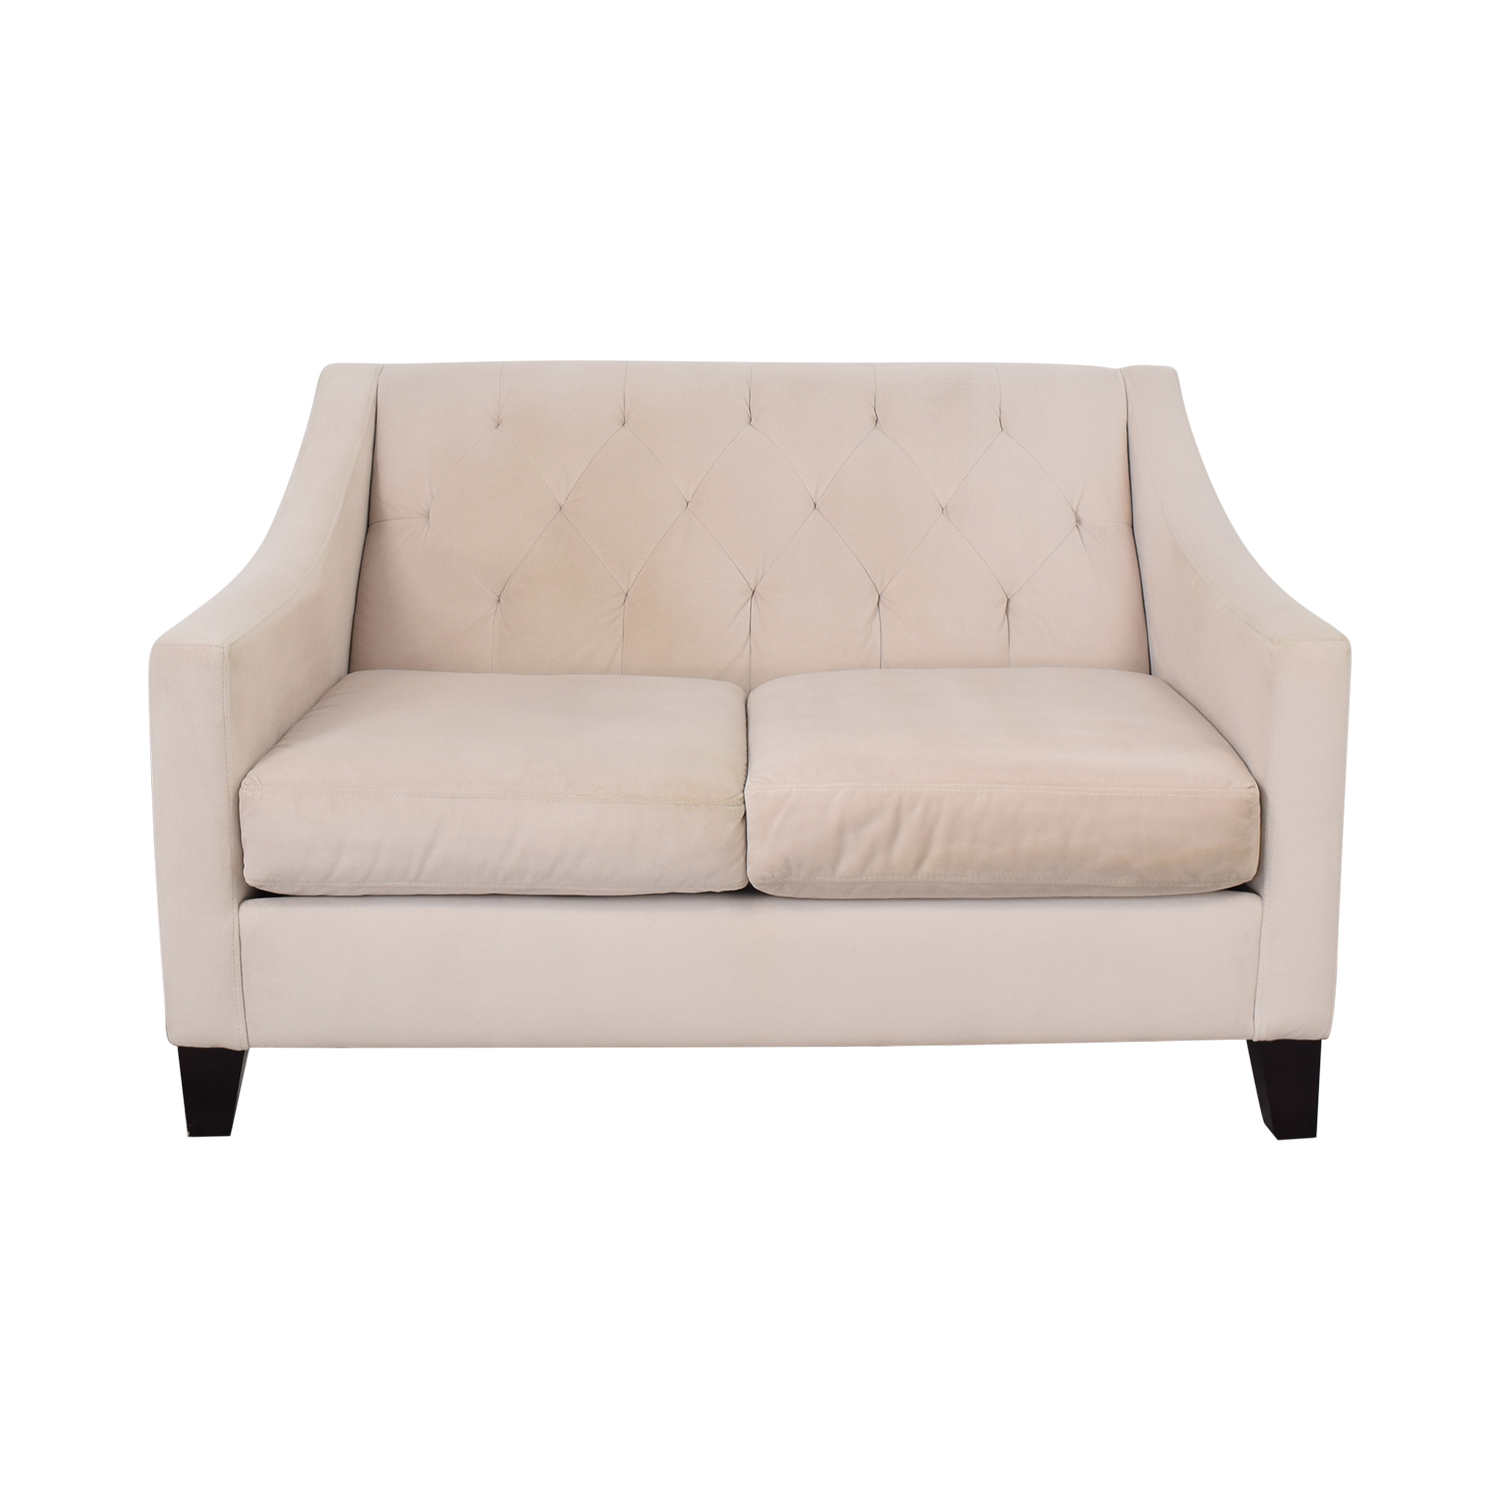 buy Macy's Cream Loveseat Macy's Sofas